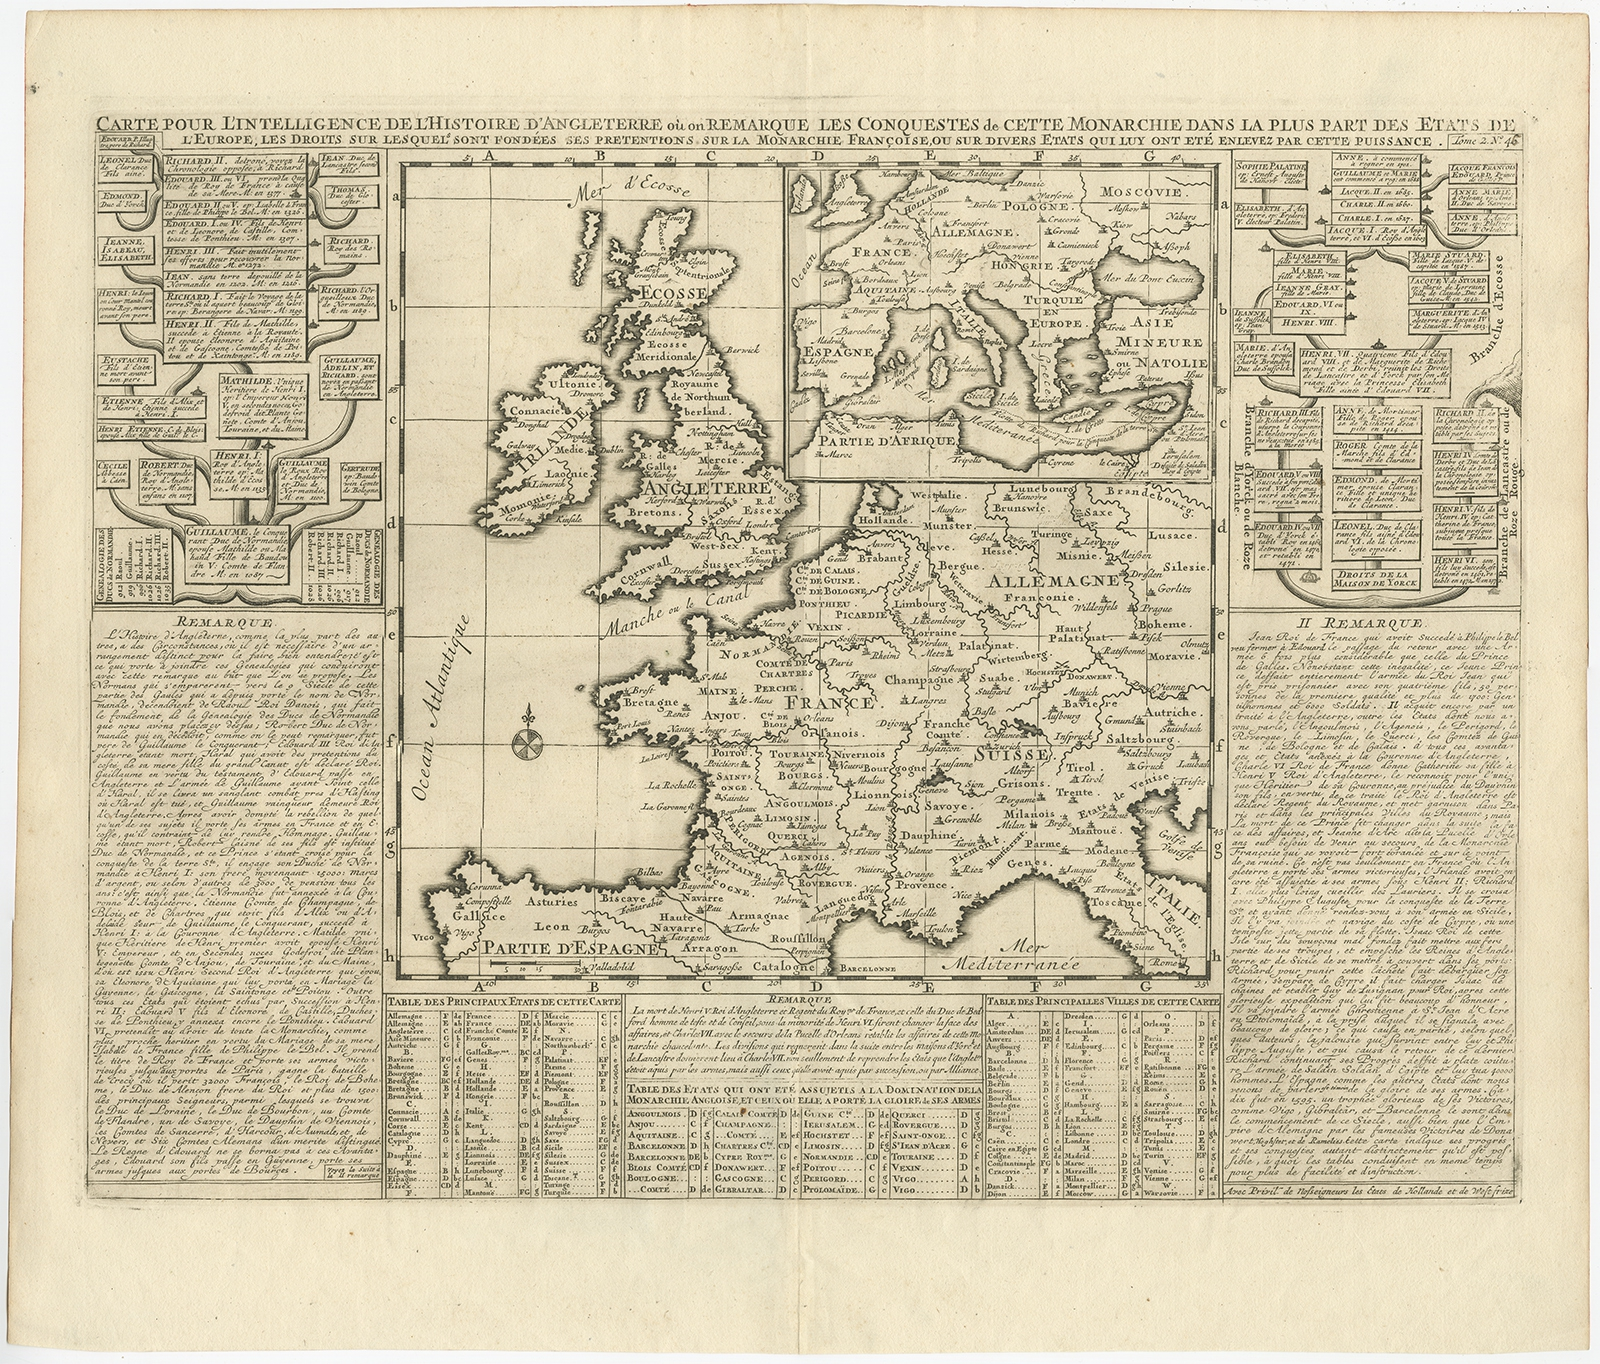 Antique Map of the British Isles and part of Europe by Chatelain